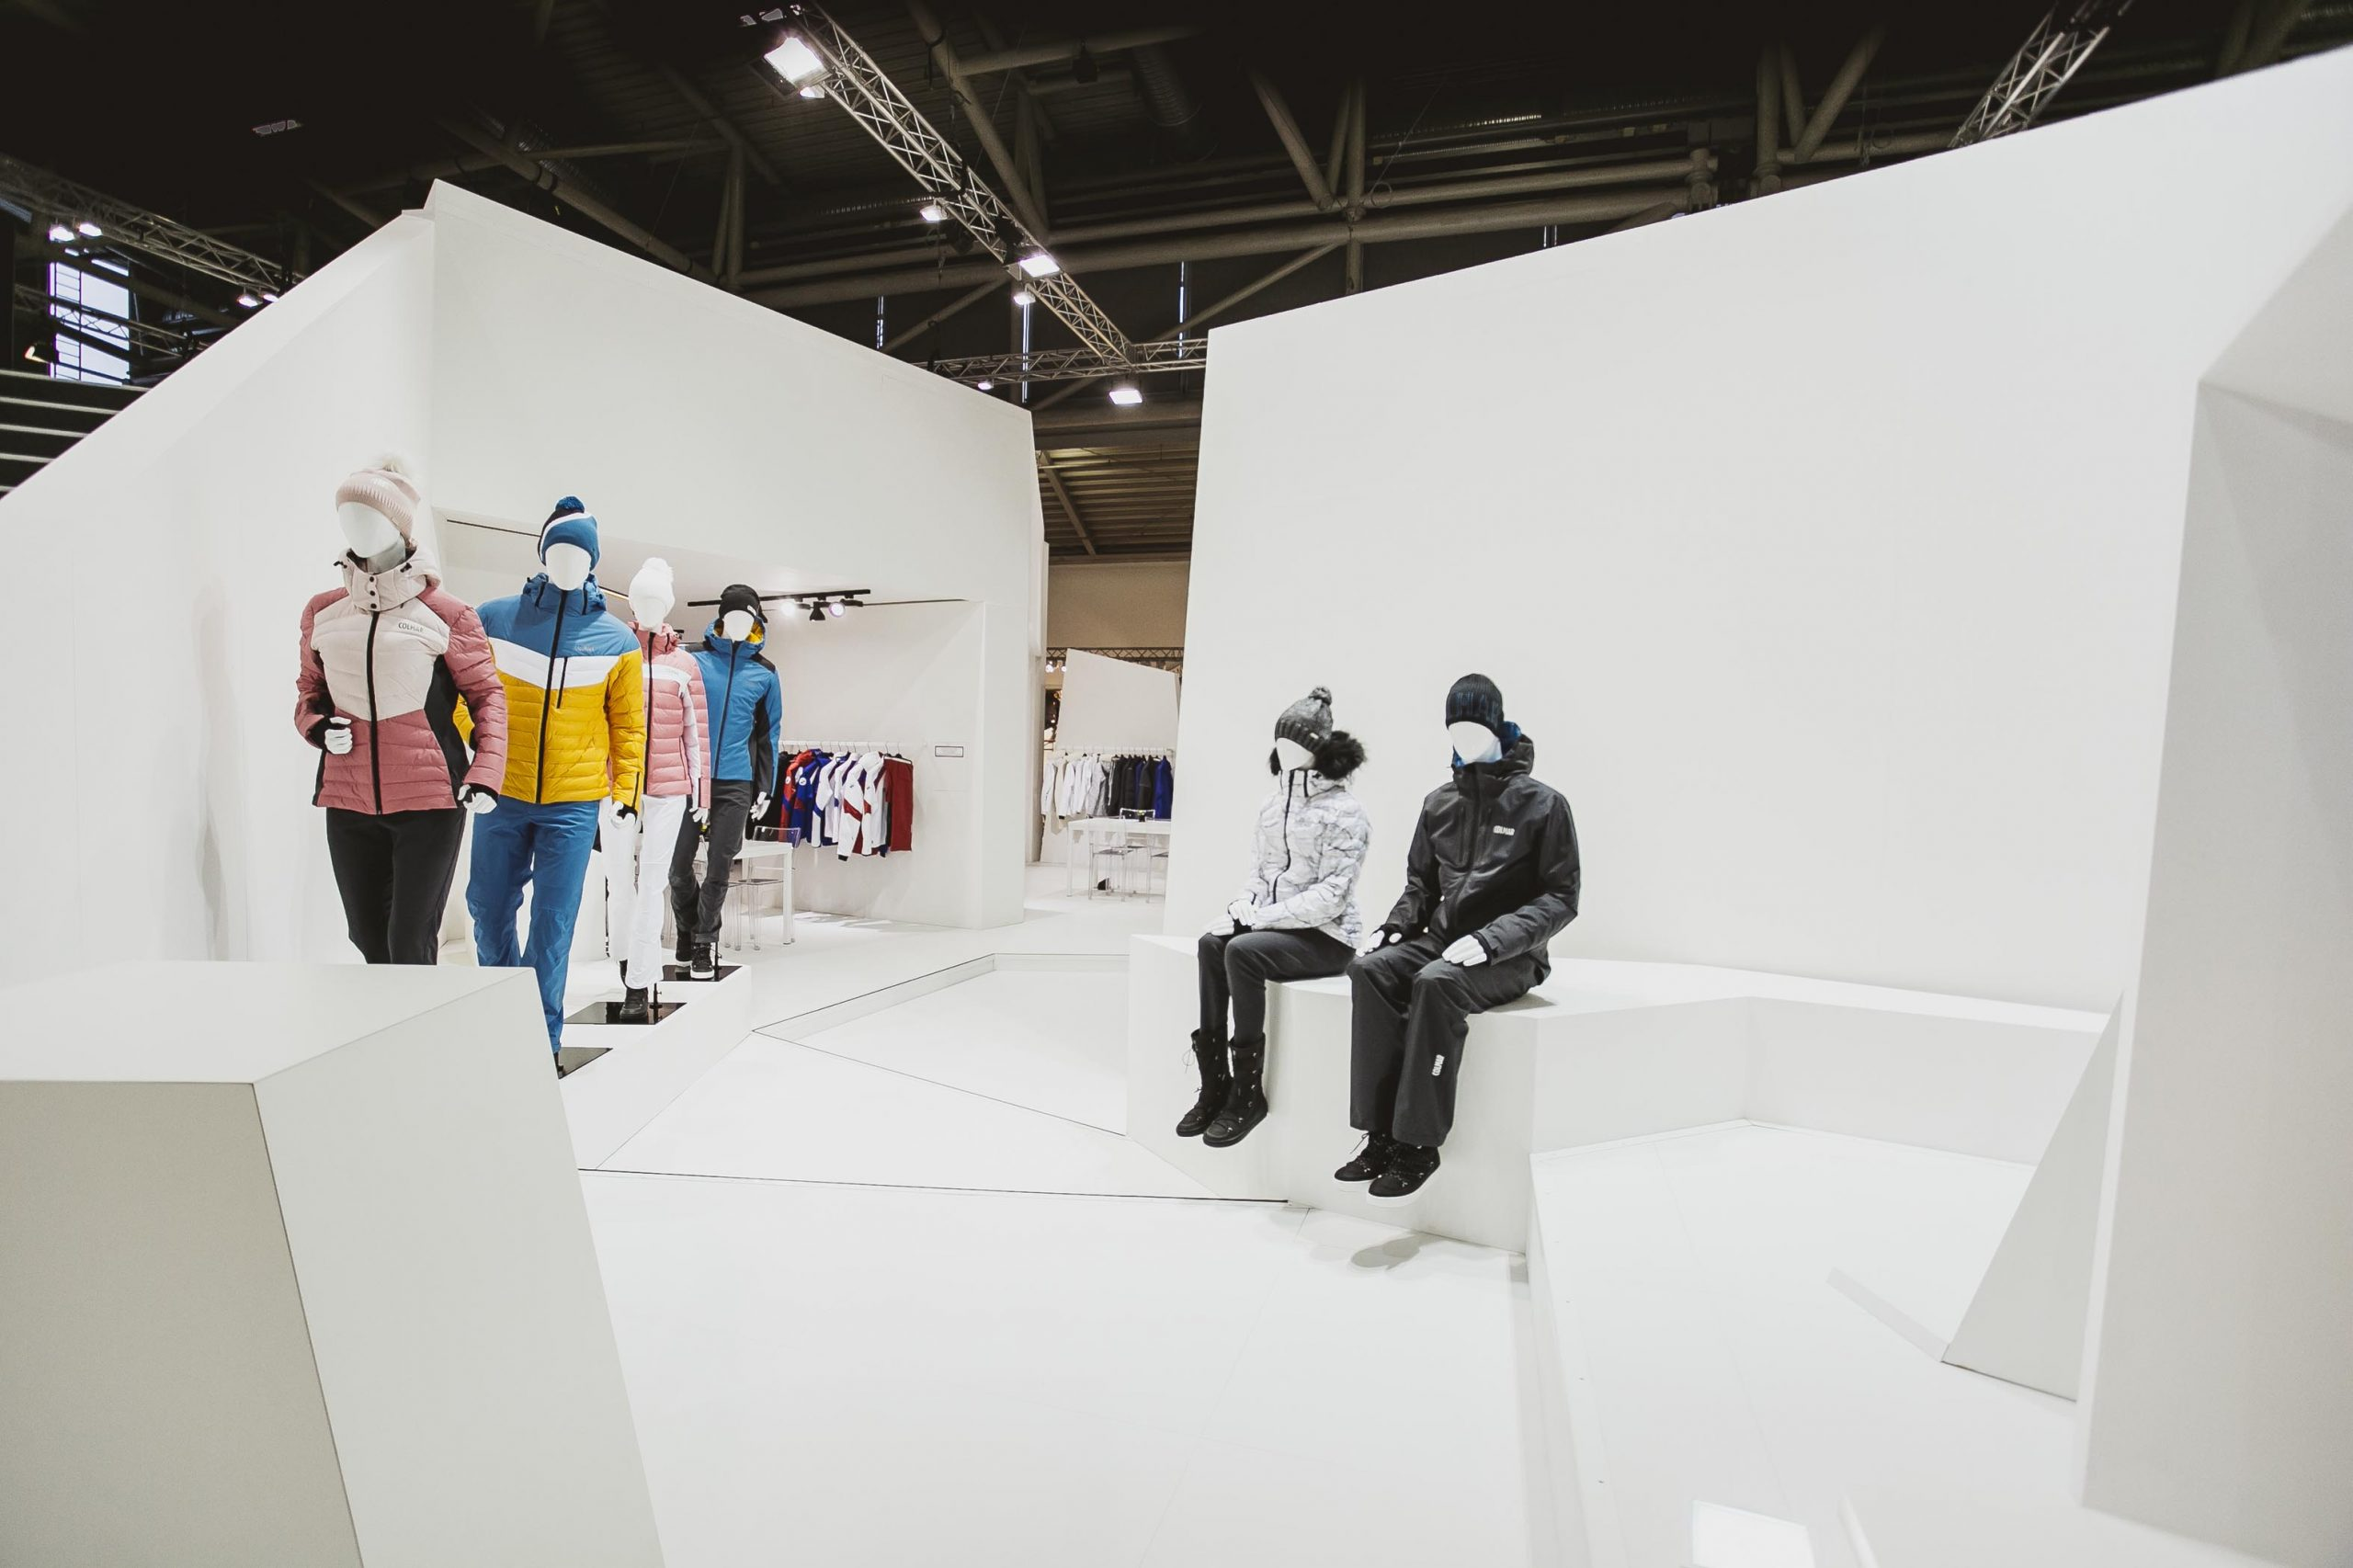 COLMAR Sport ISPO Munich stand exposition project 04